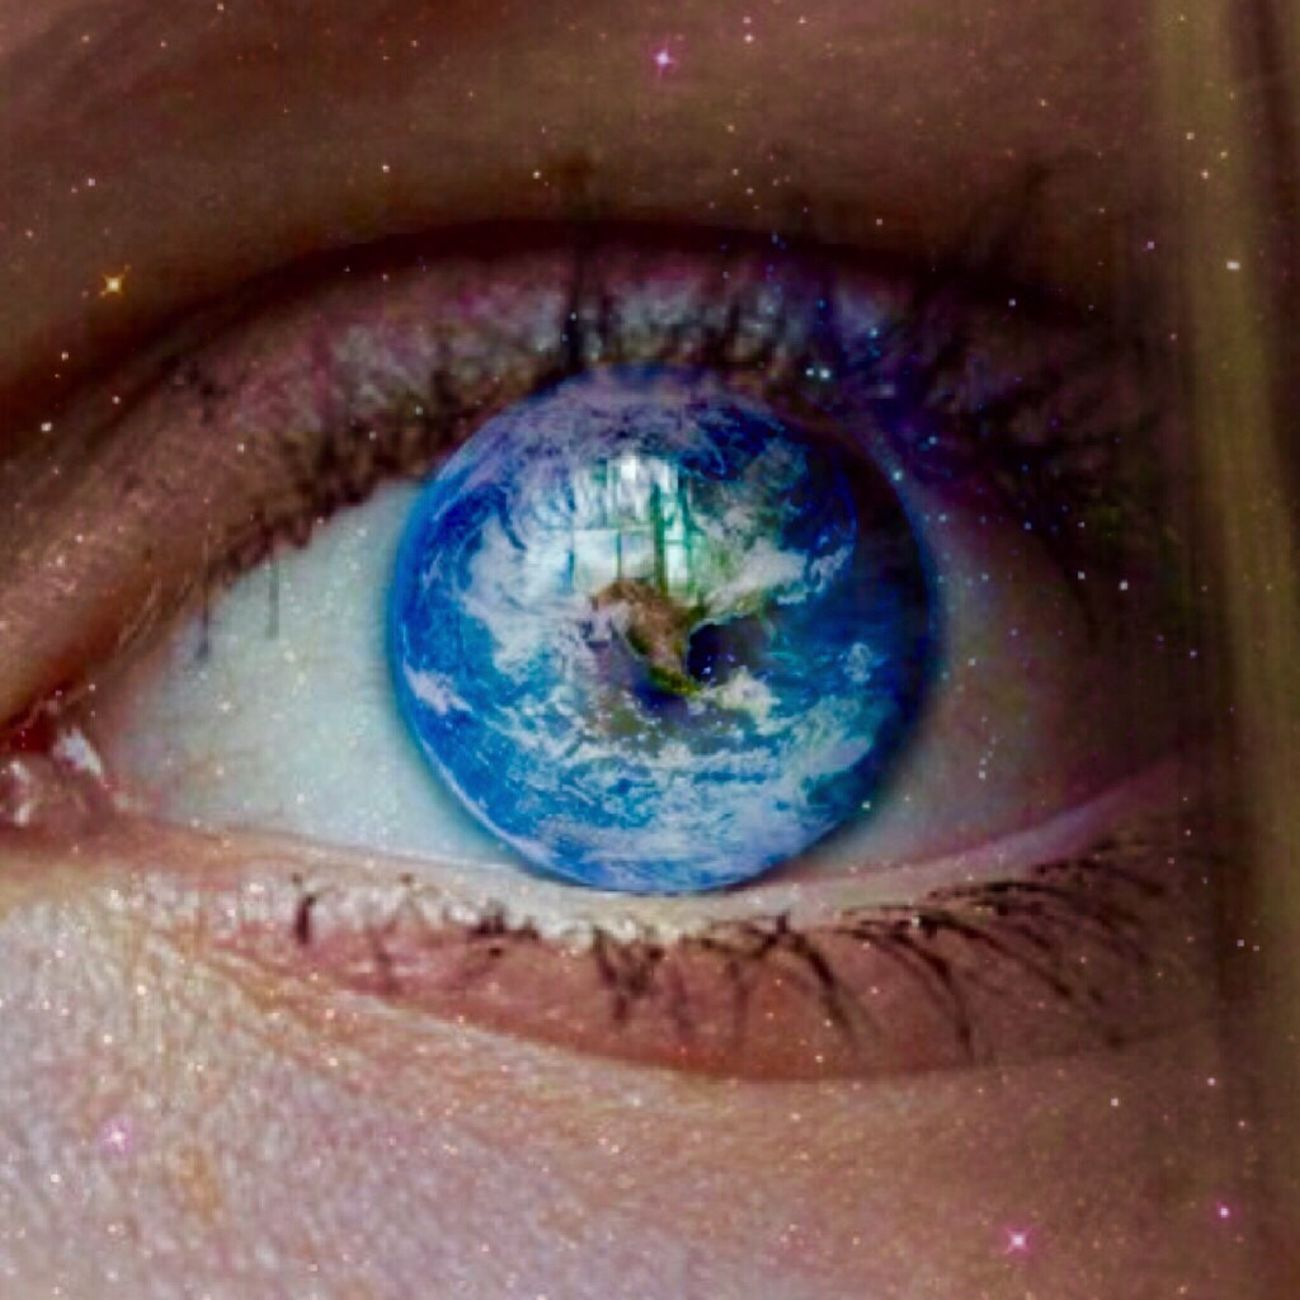 Eye can't sleep🙈 Blue Eyes Earth Wide Awake I Need Sleep 2am Seeing The World